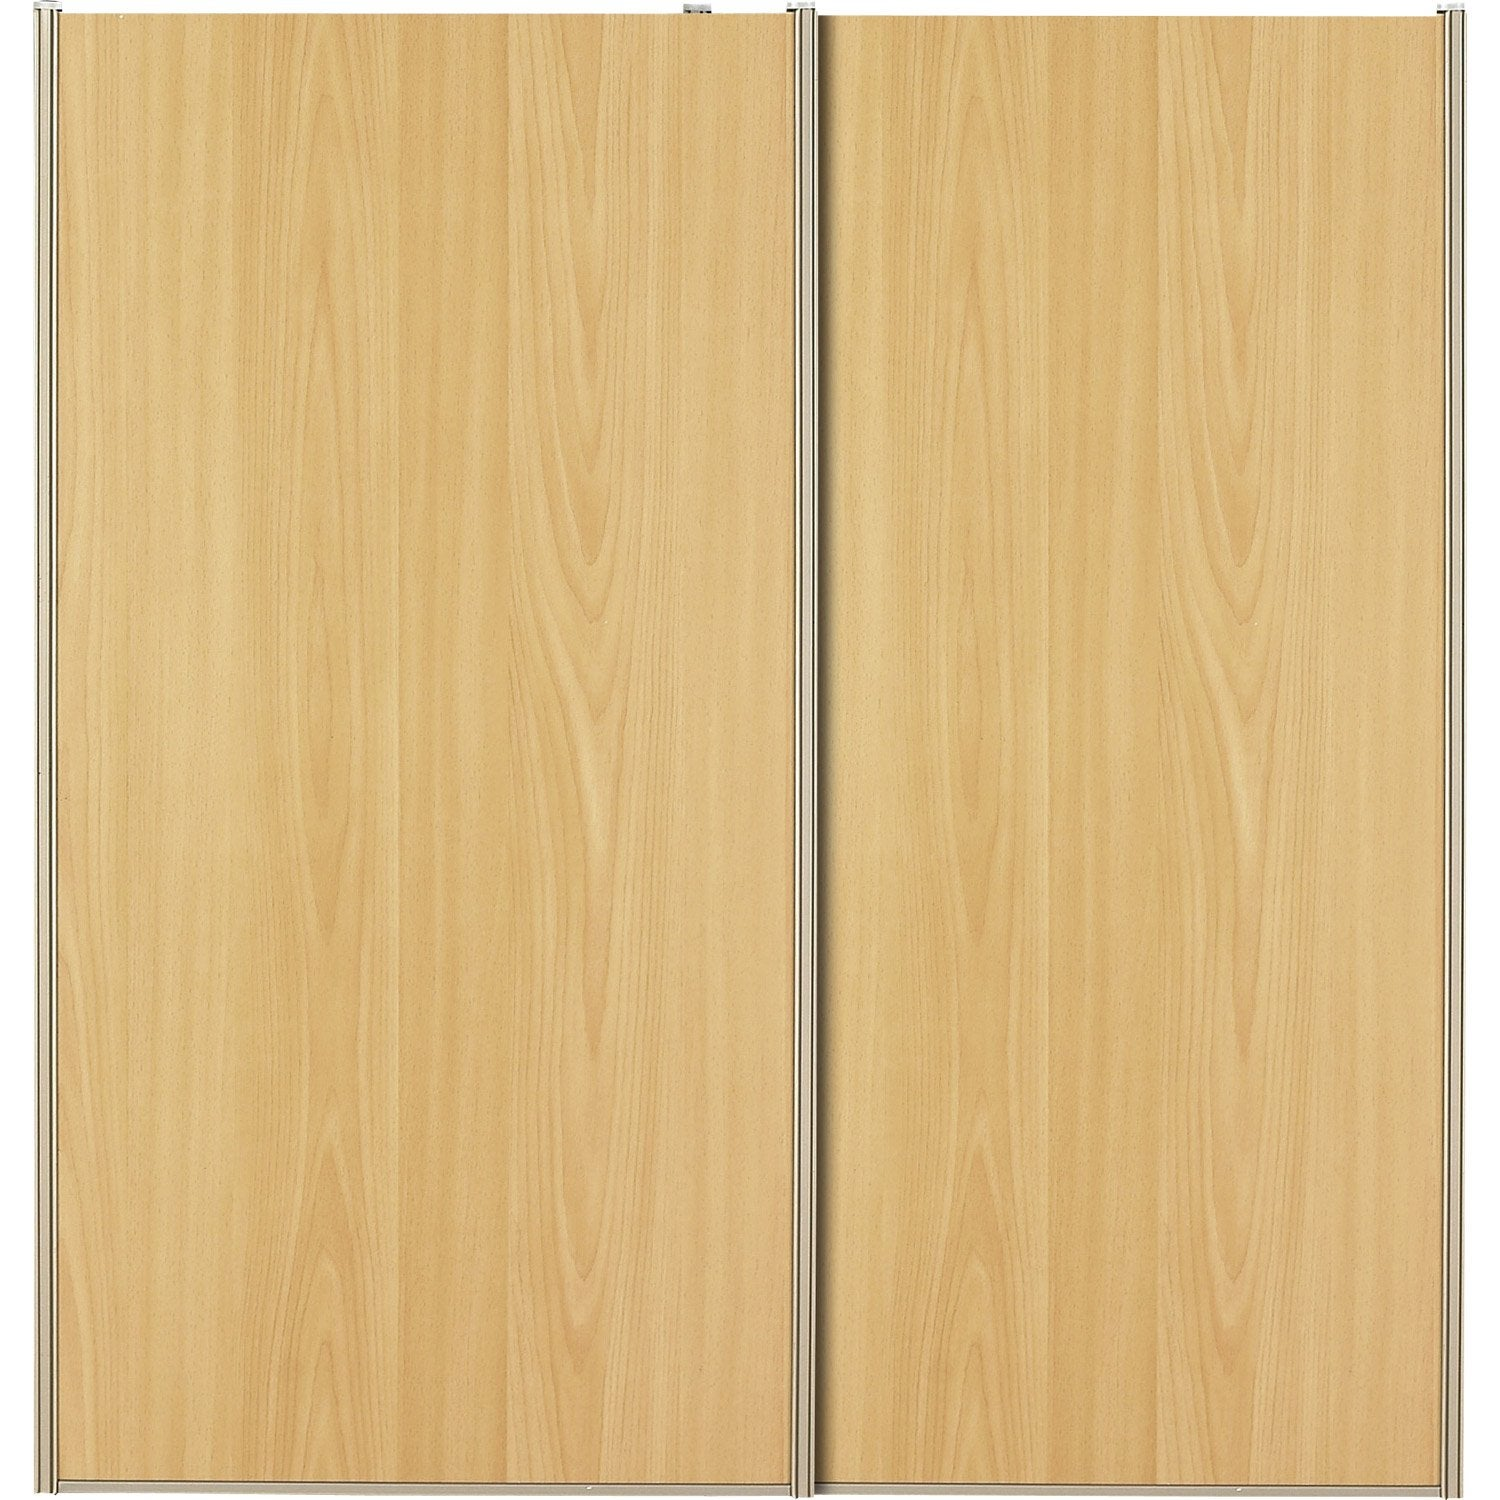 Lot de 2 portes de placard coulissantes naturel 120x120cm leroy merlin for Porte placard bois